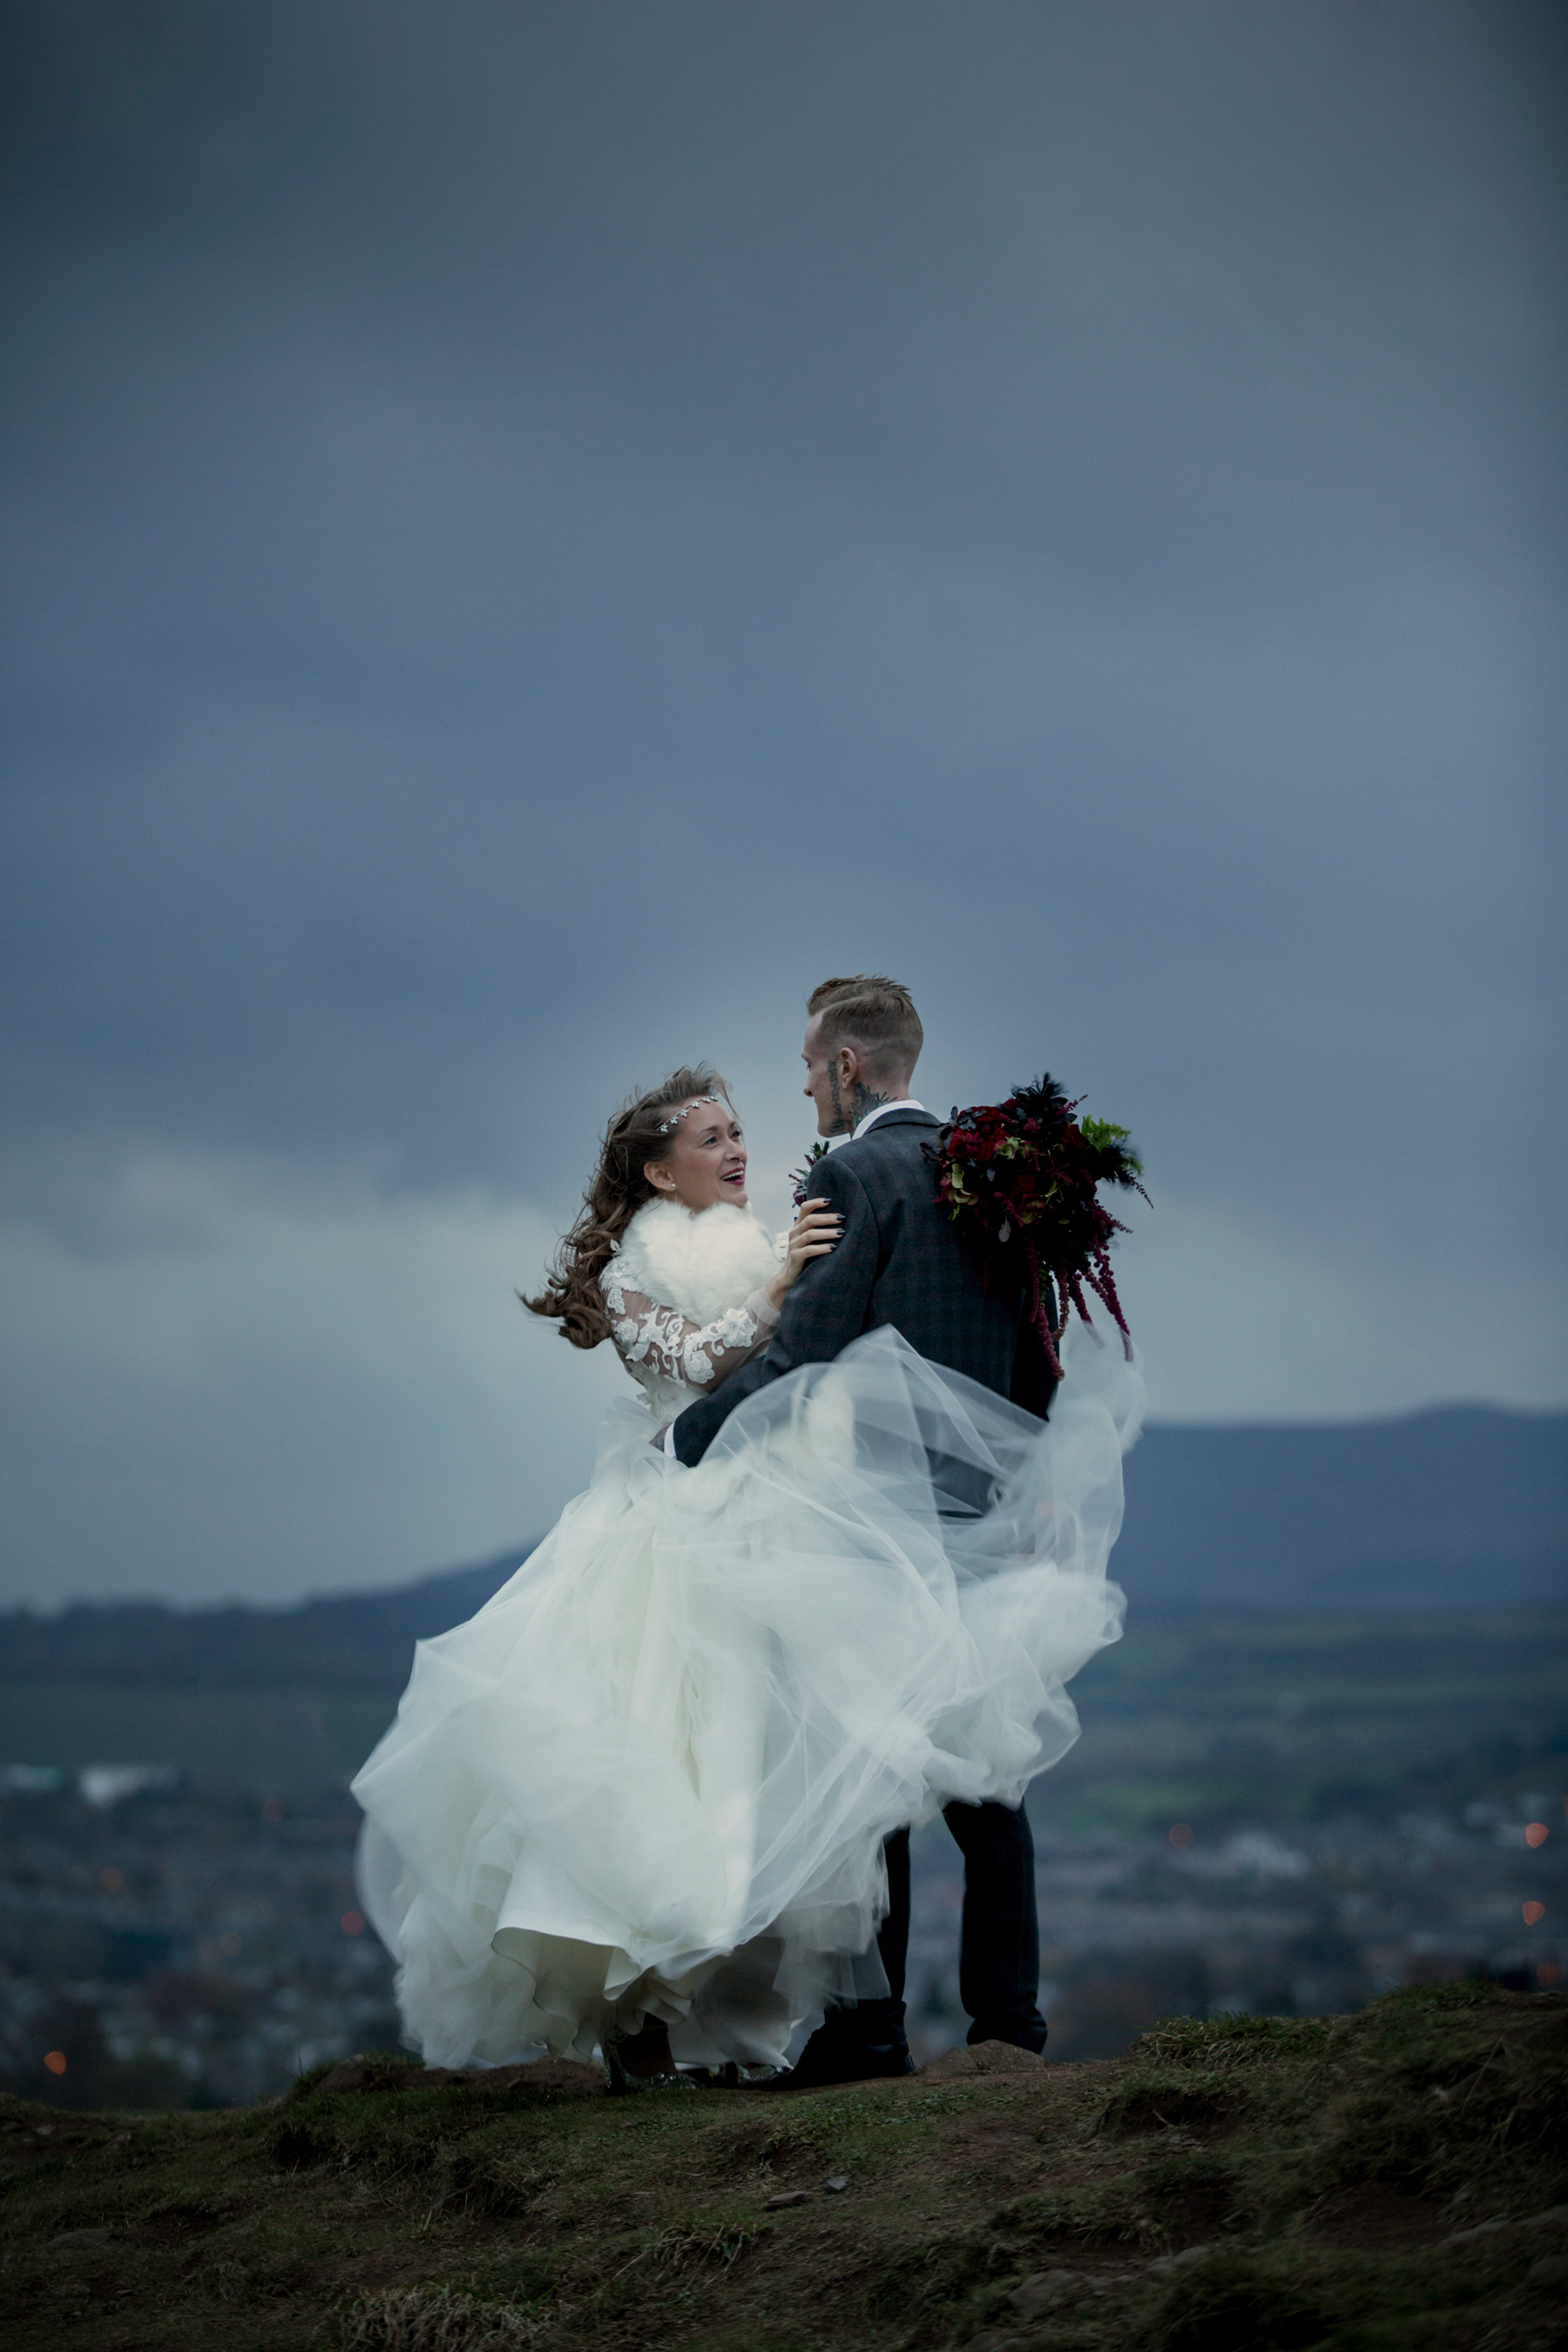 windy wedding portraits in scotland